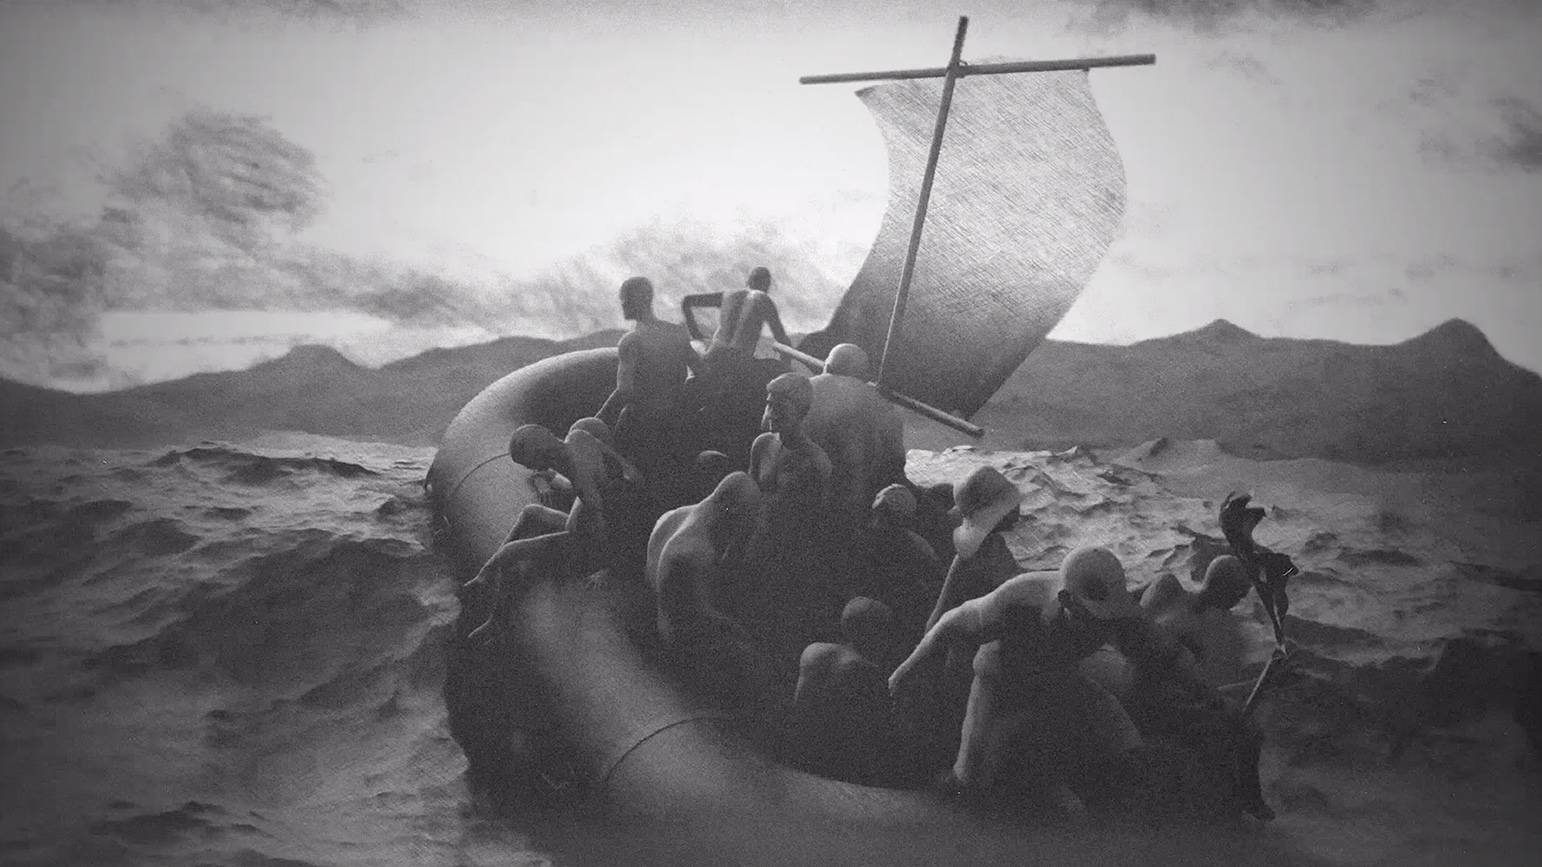 Black-and-white animation of people on a raft in a turbulent sea